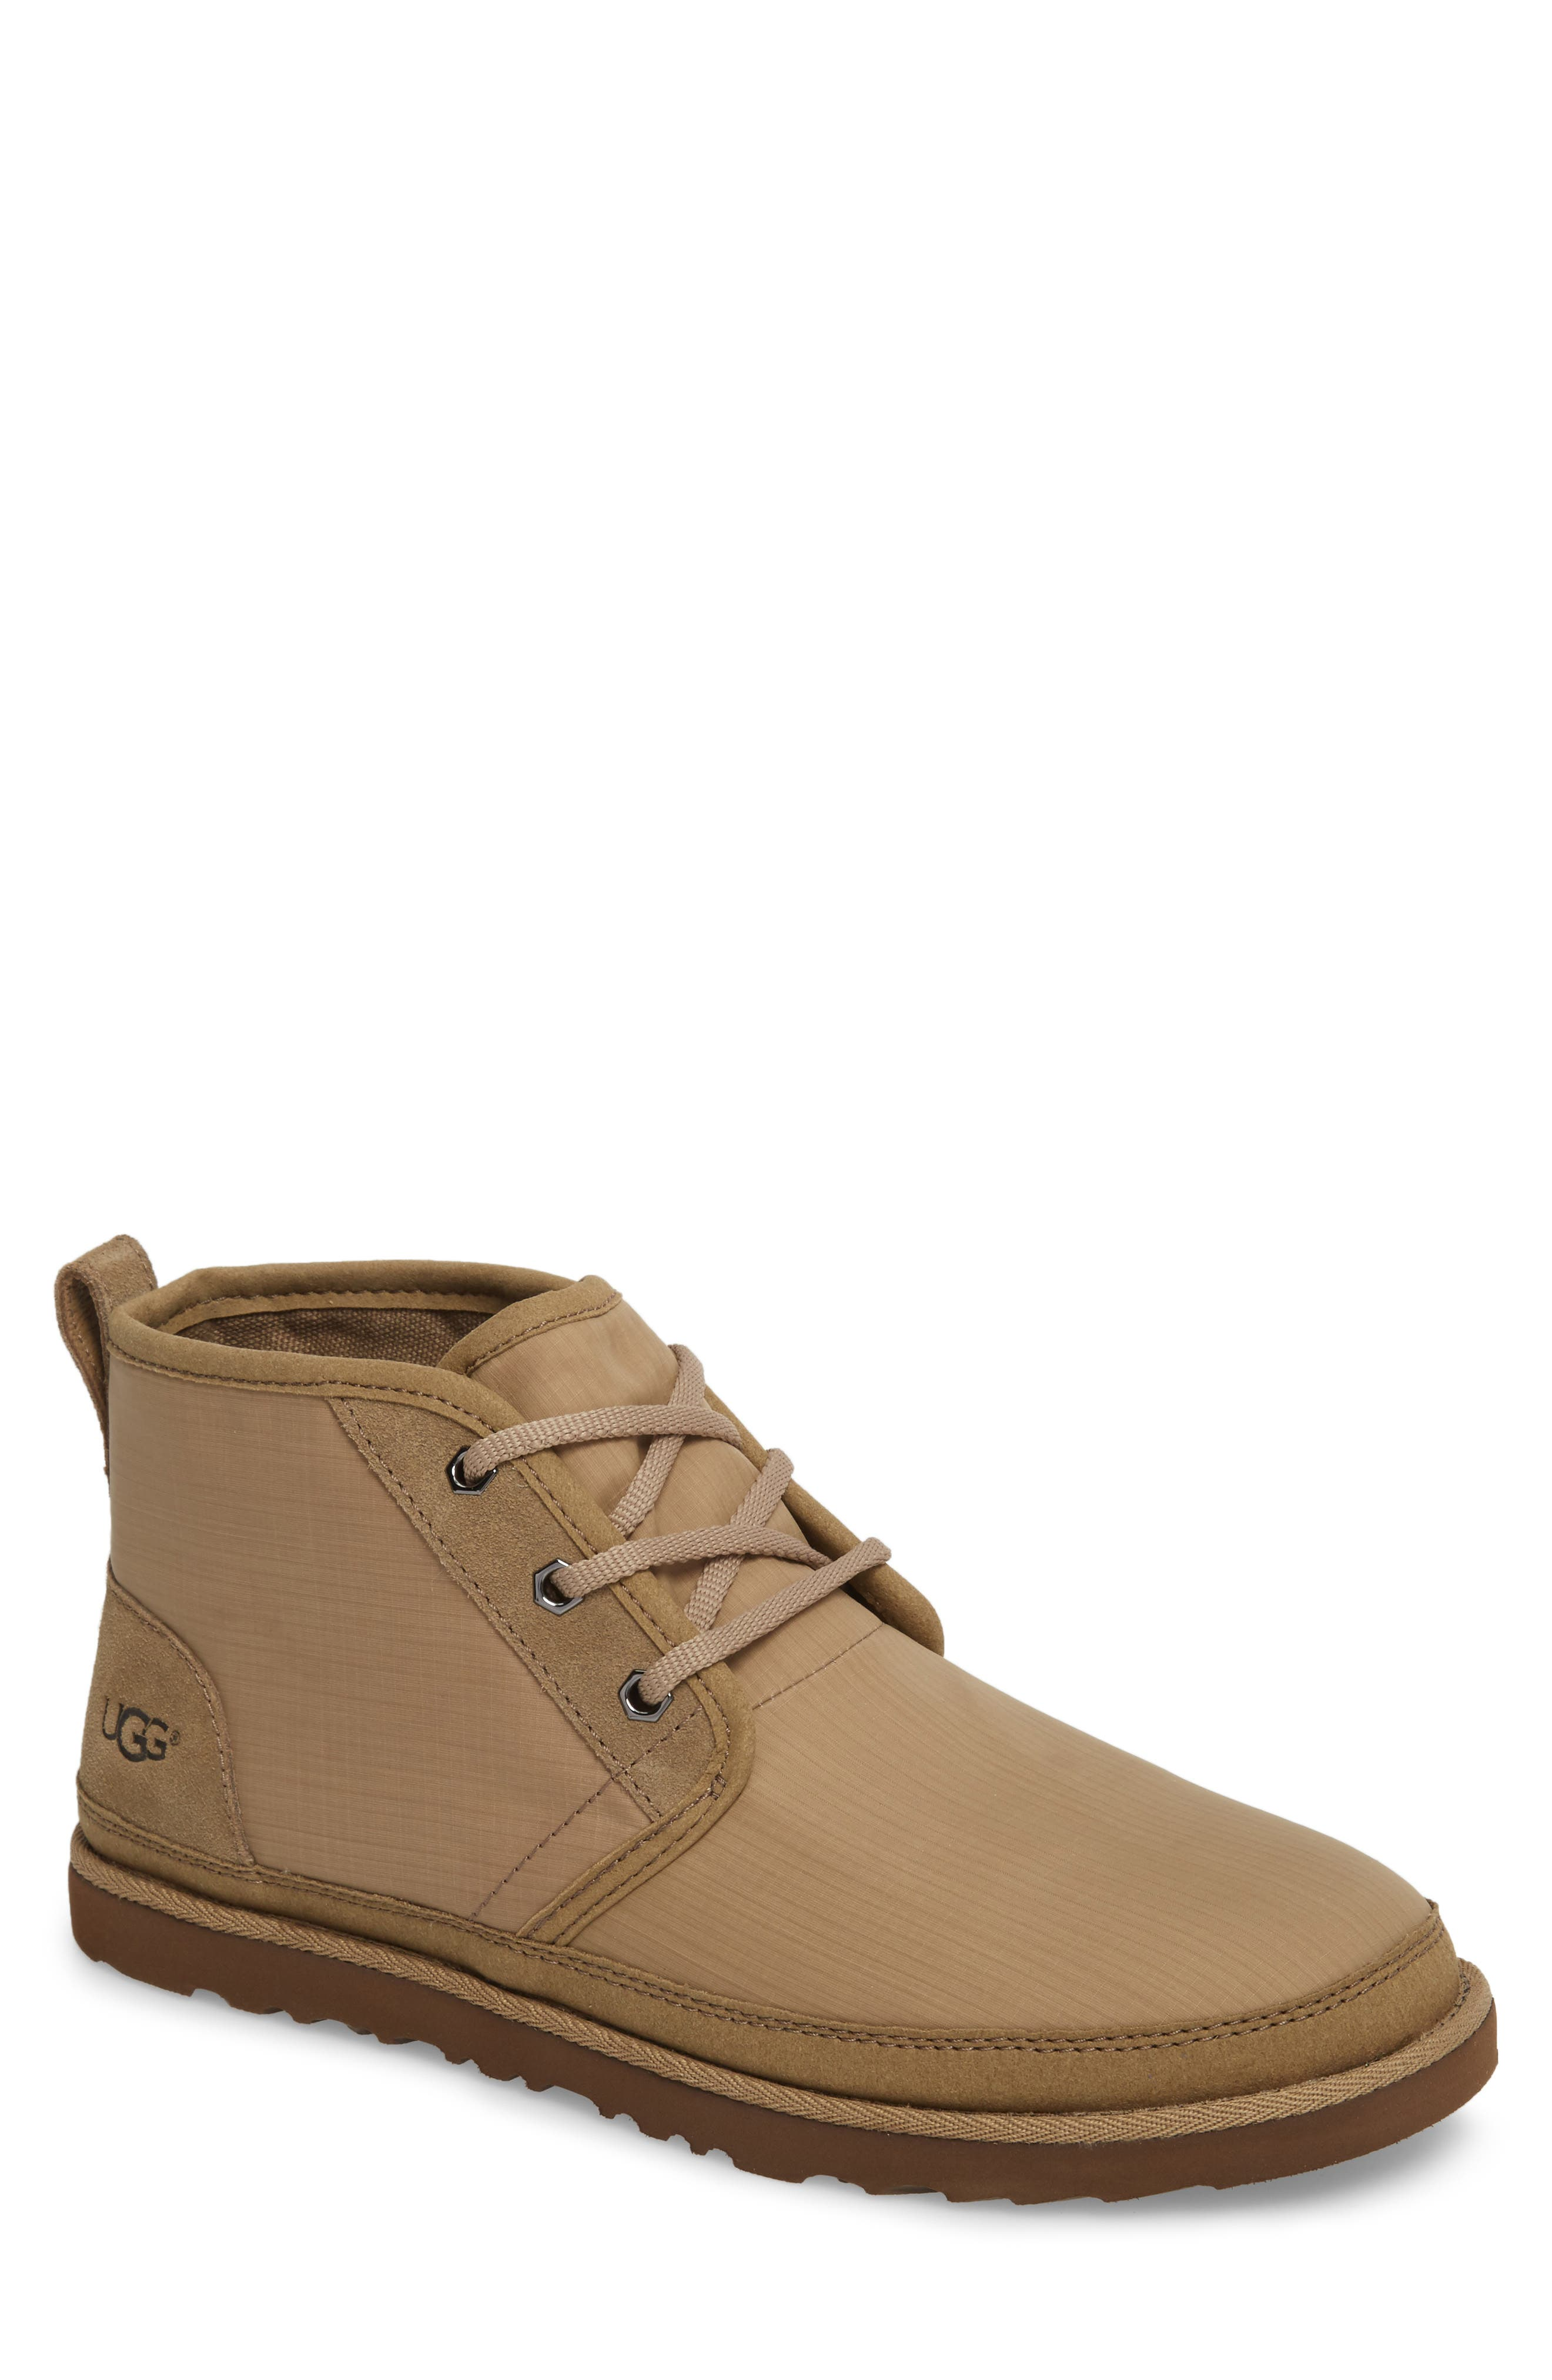 Neumel Ripstop Chukka Boot,                         Main,                         color, ANTILOPE LEATHER